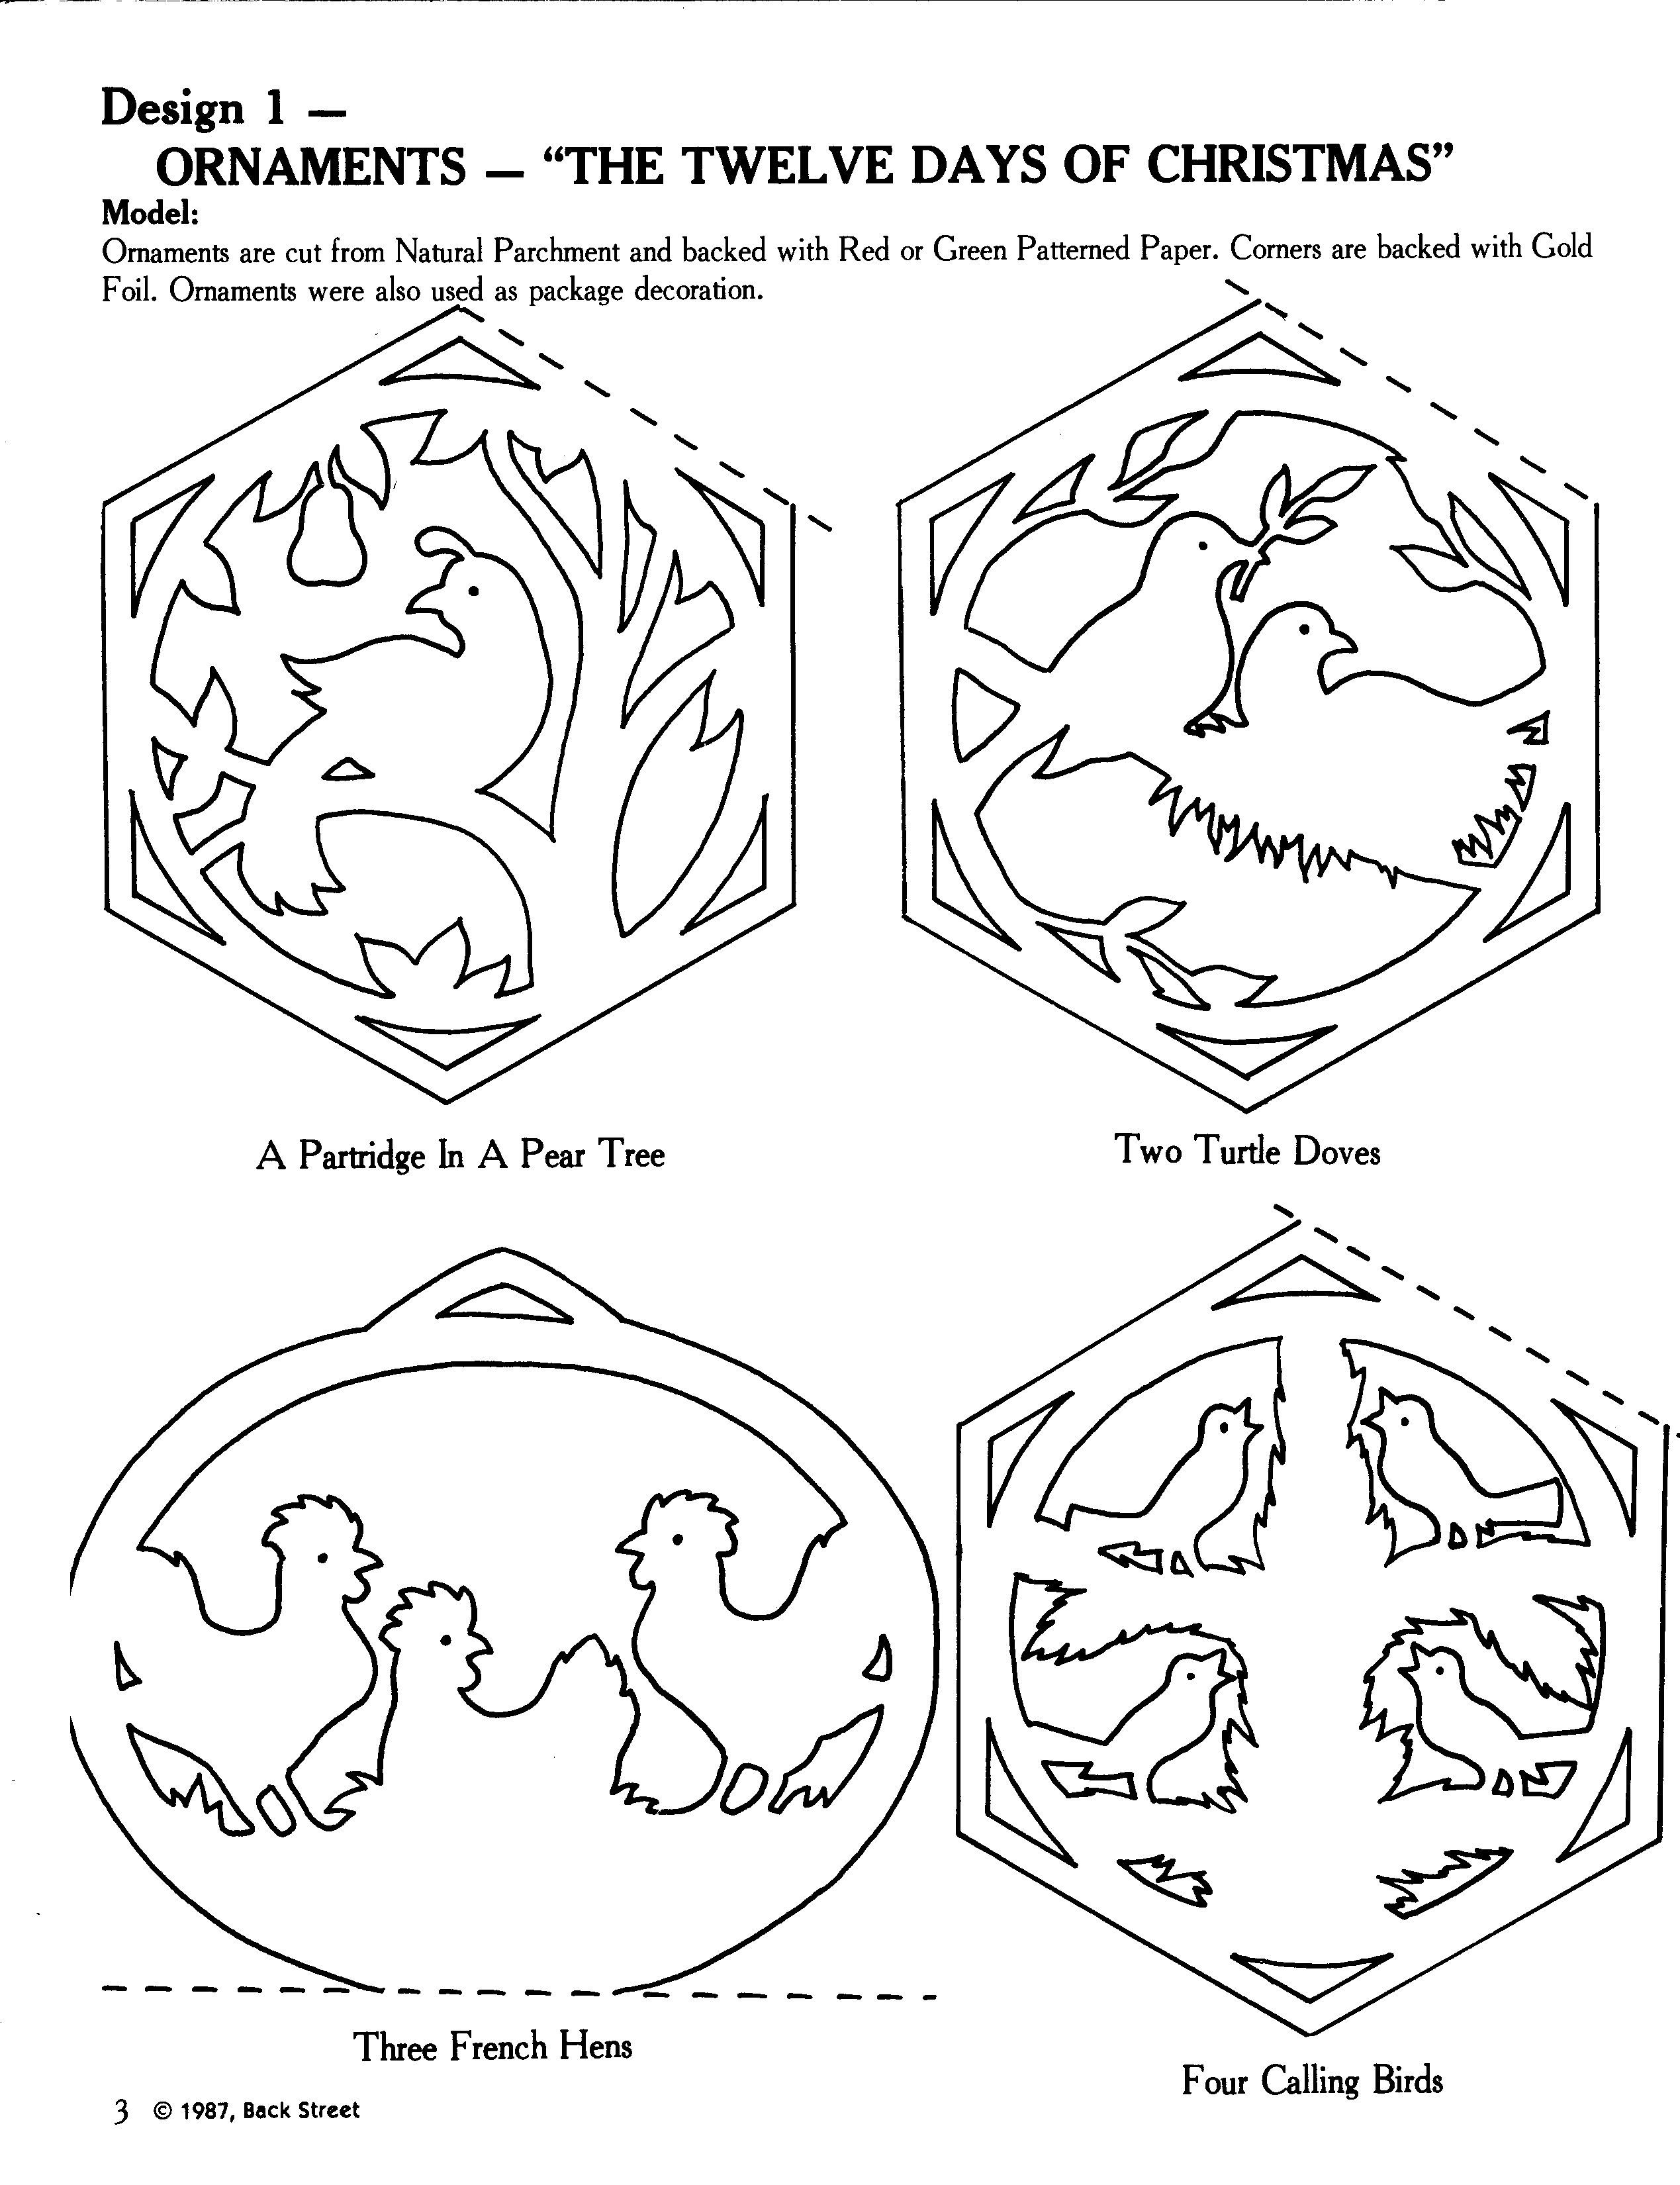 Click image for largest version available scroll saw patterns